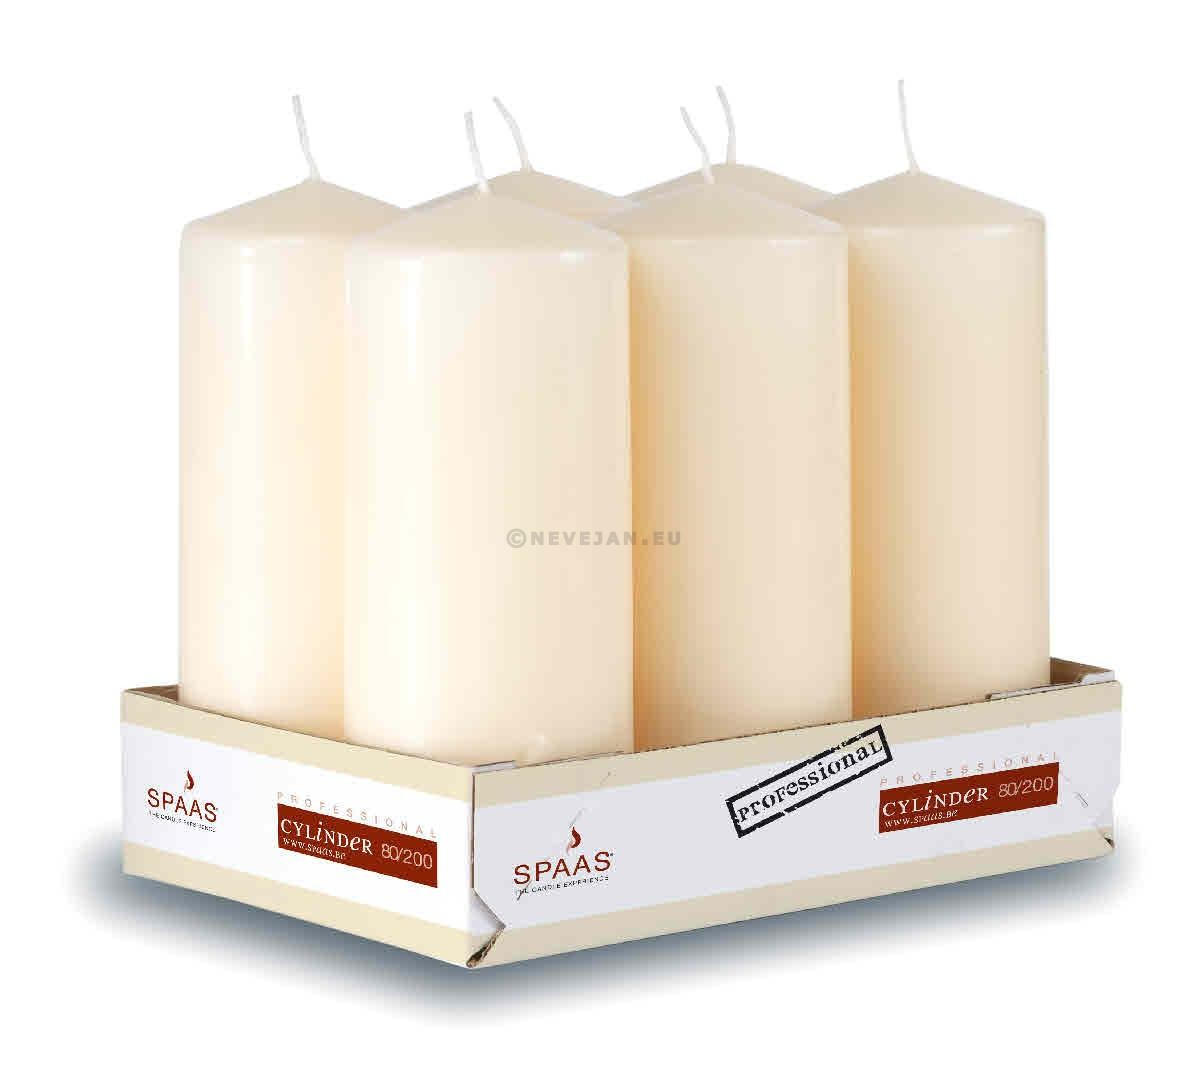 Spaas Pillar Candles ivory 80x200 mm 100h 6pcs